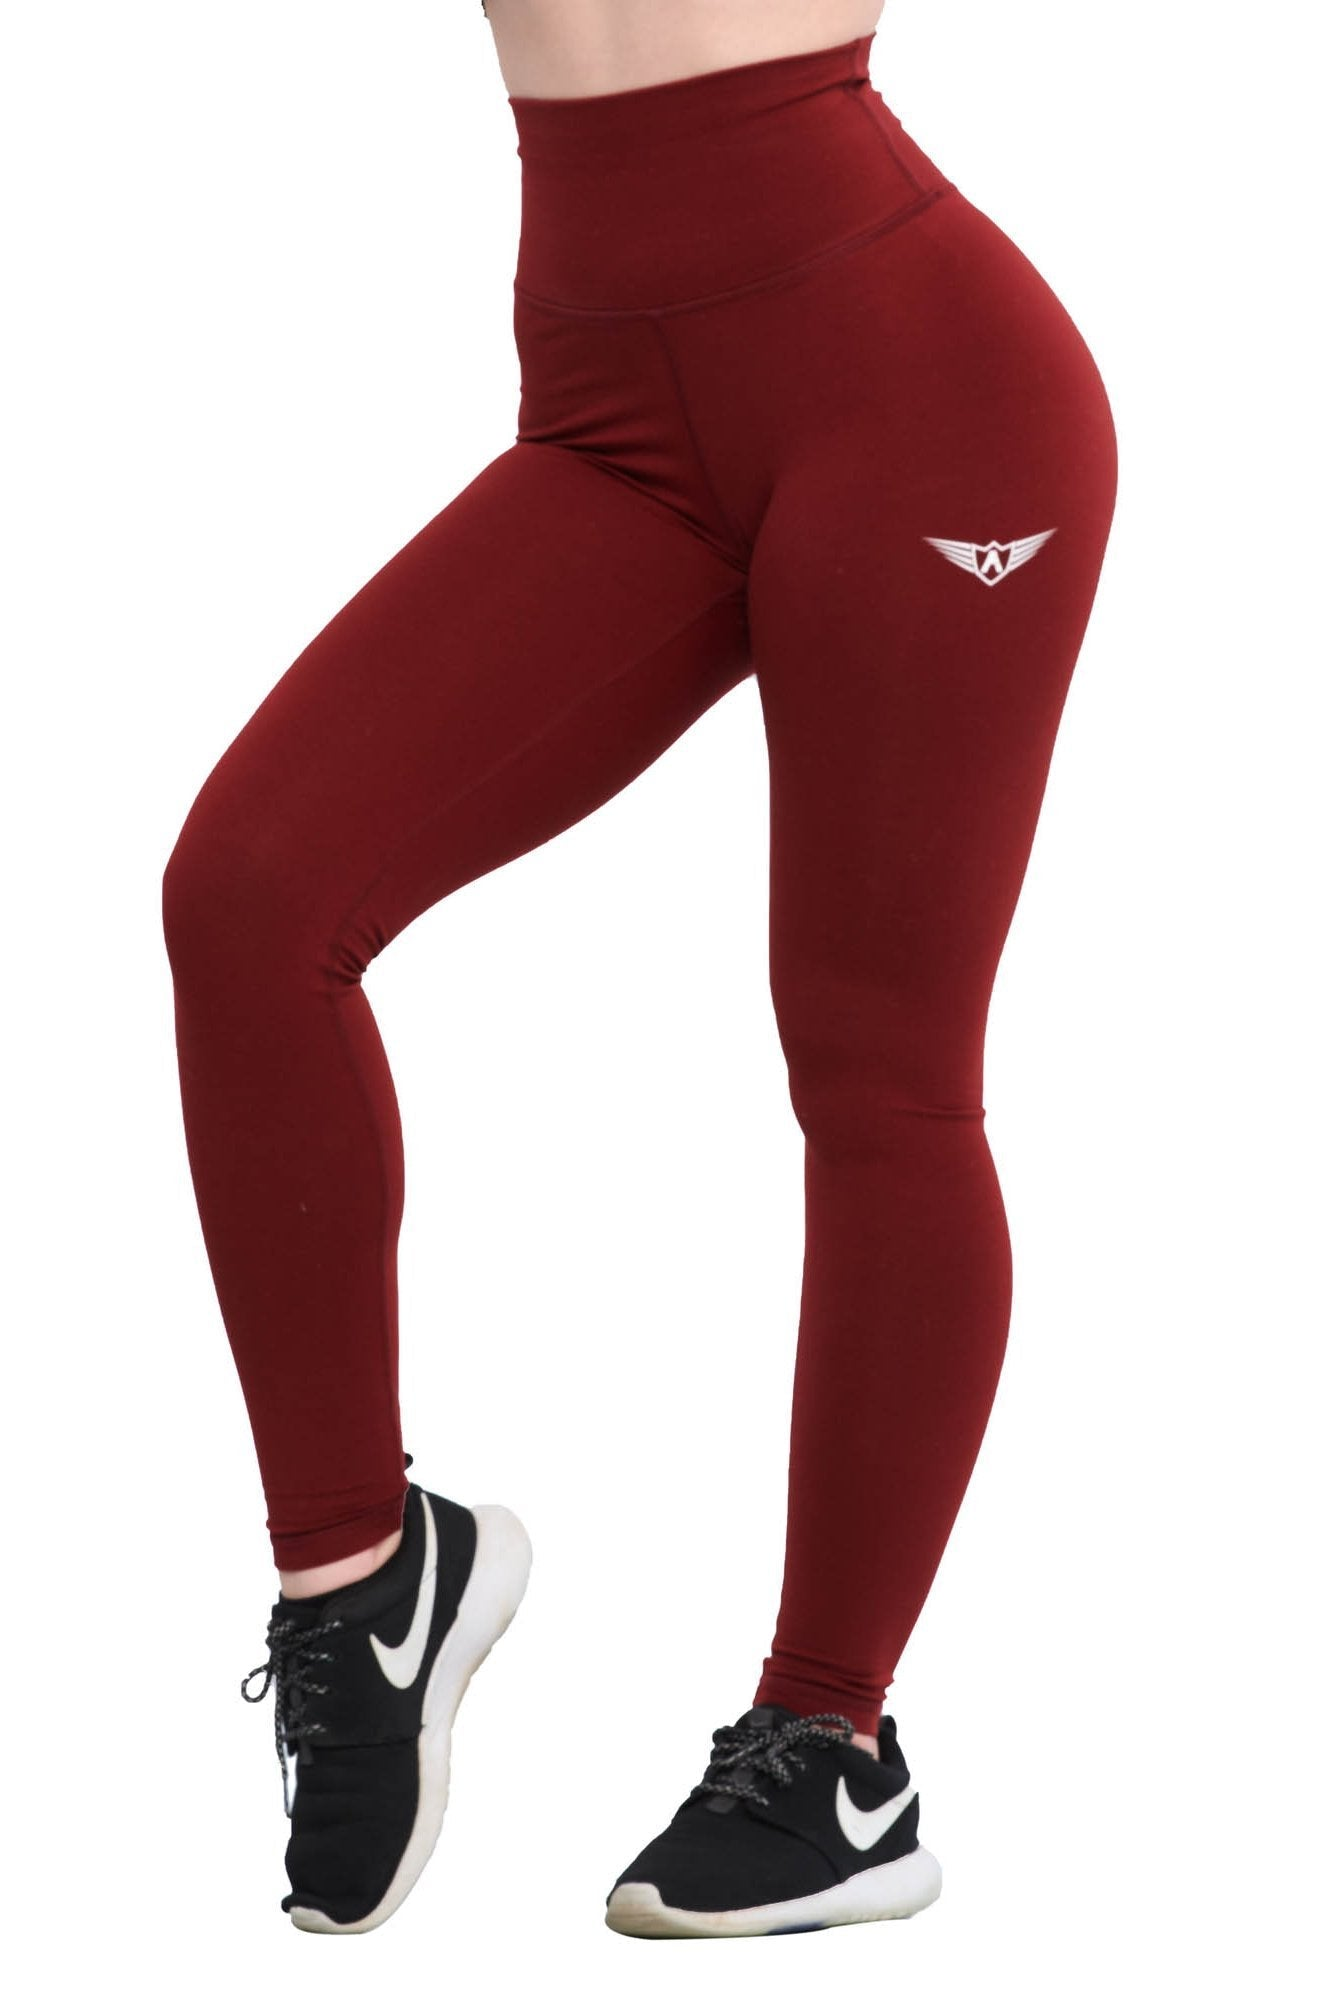 Compression Tights High Waist Up To 75 Off In Stock